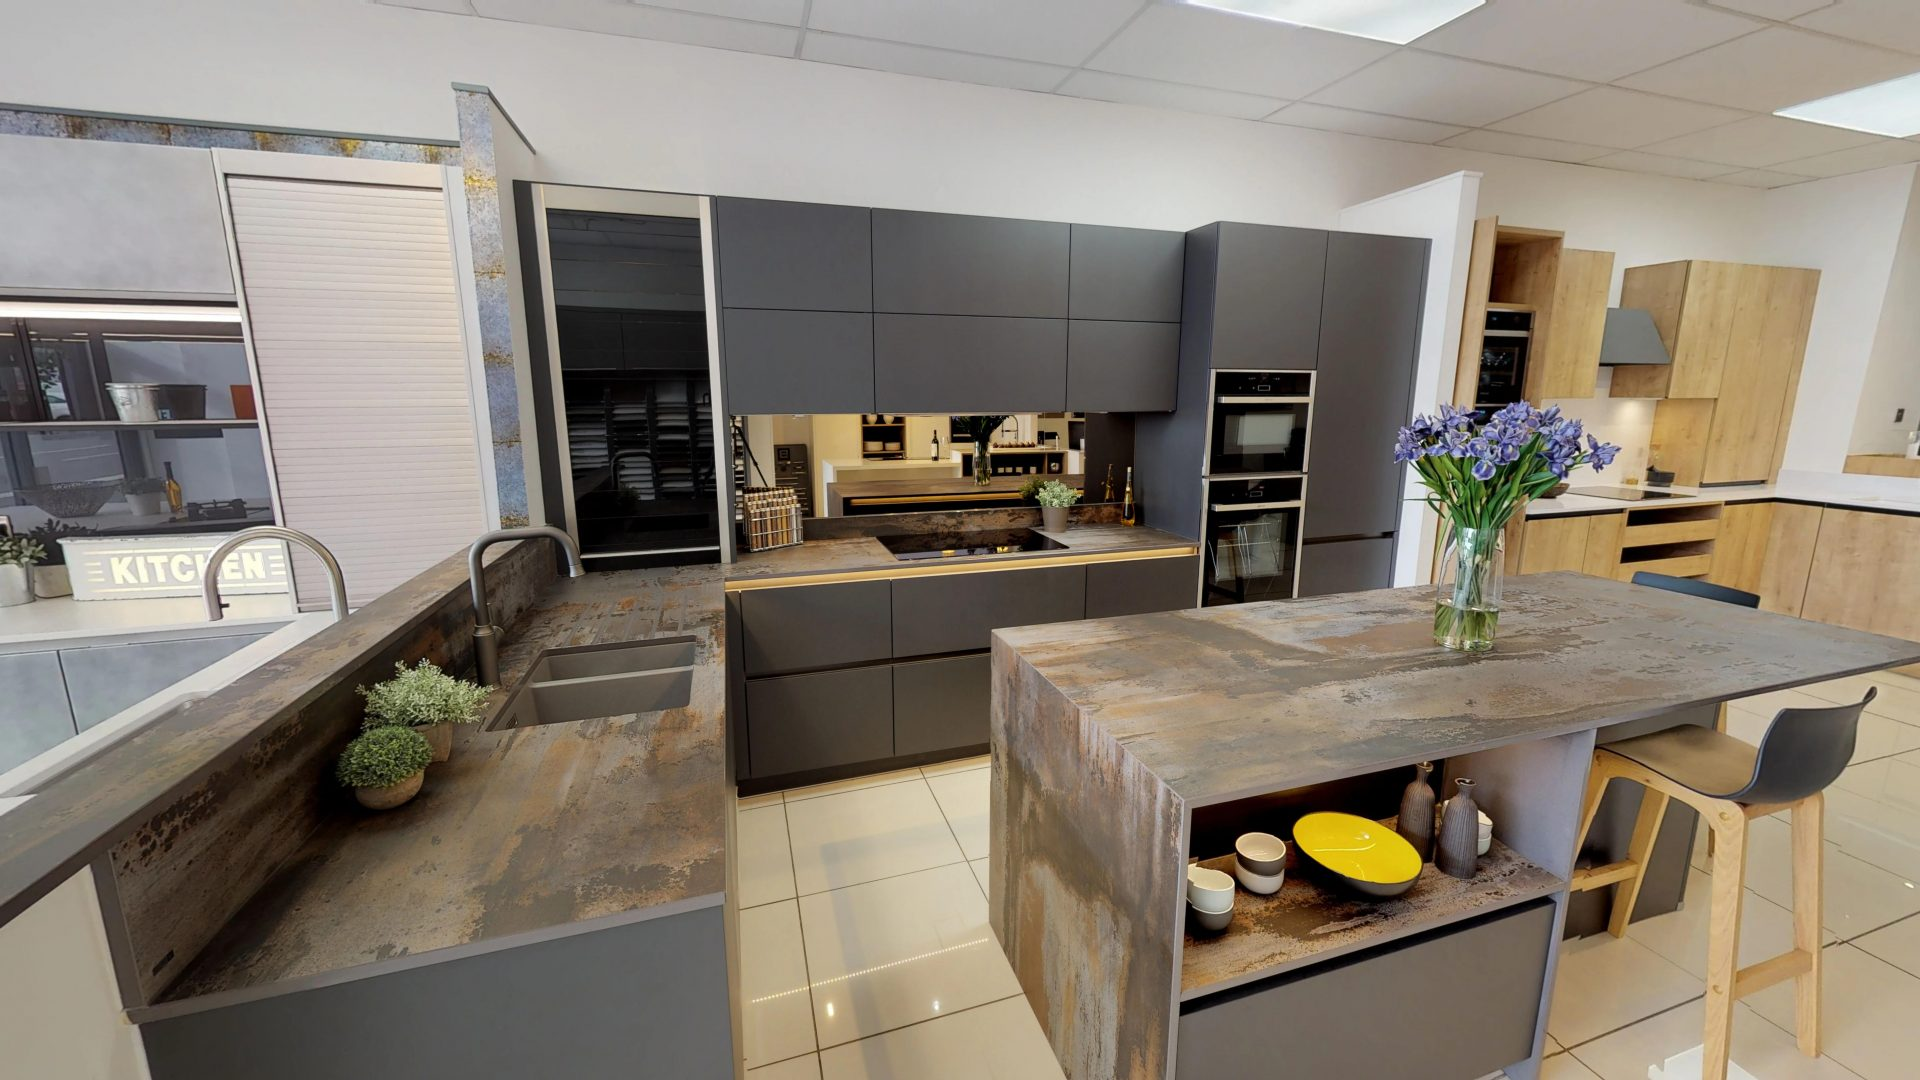 The-Kitchen-Partners-04302019_131657